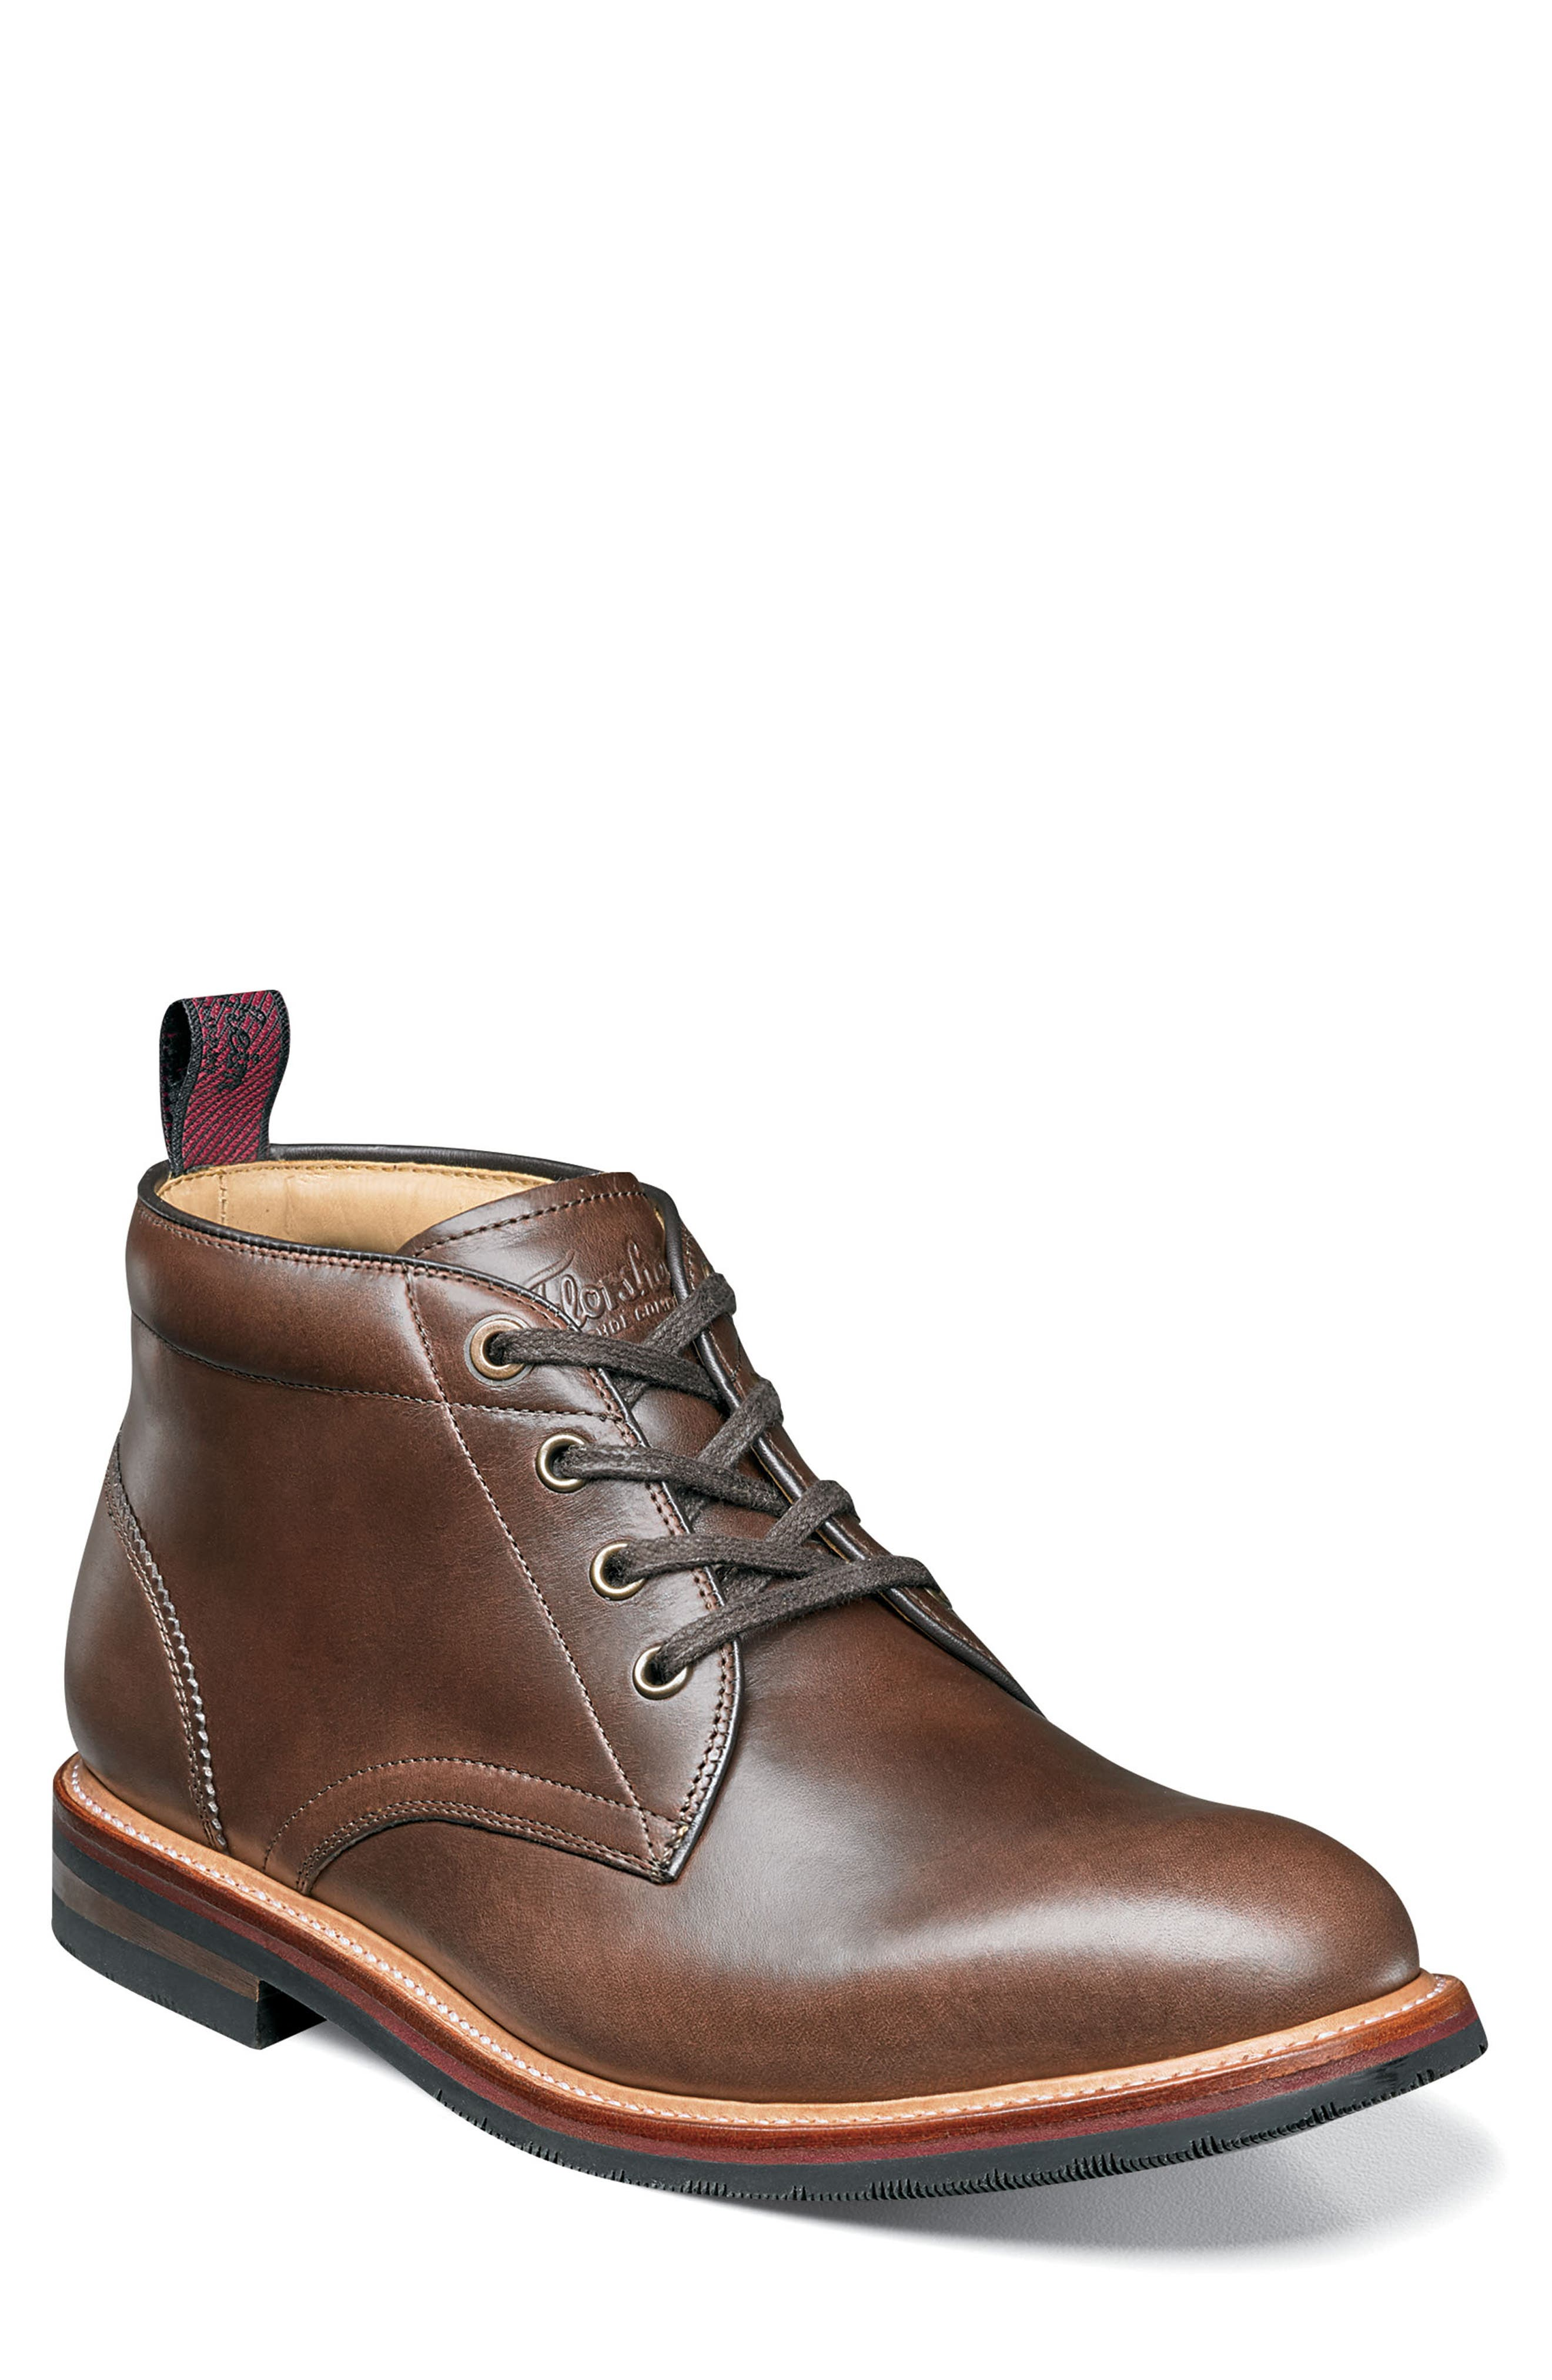 FLORSHEIM Foundry Leather Boot in Brown Leather